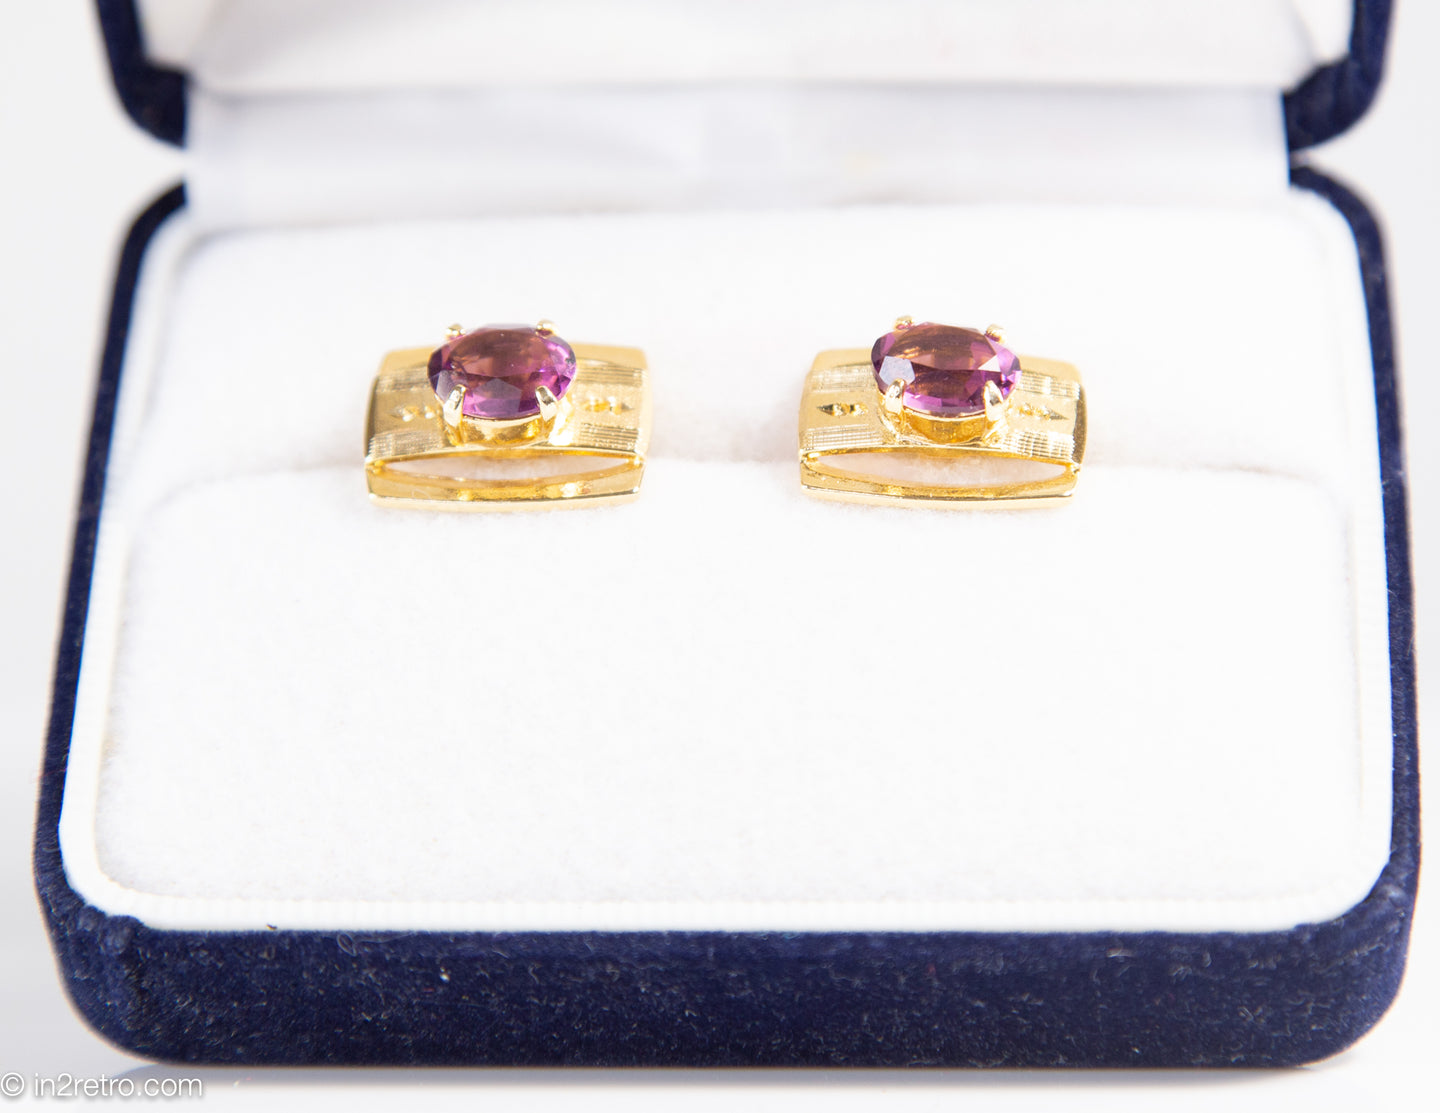 VINTAGE GOLDEN BRUSHED SHINY CUFFLINKS WITH PURPLE AMETHYST STONE | GIFT